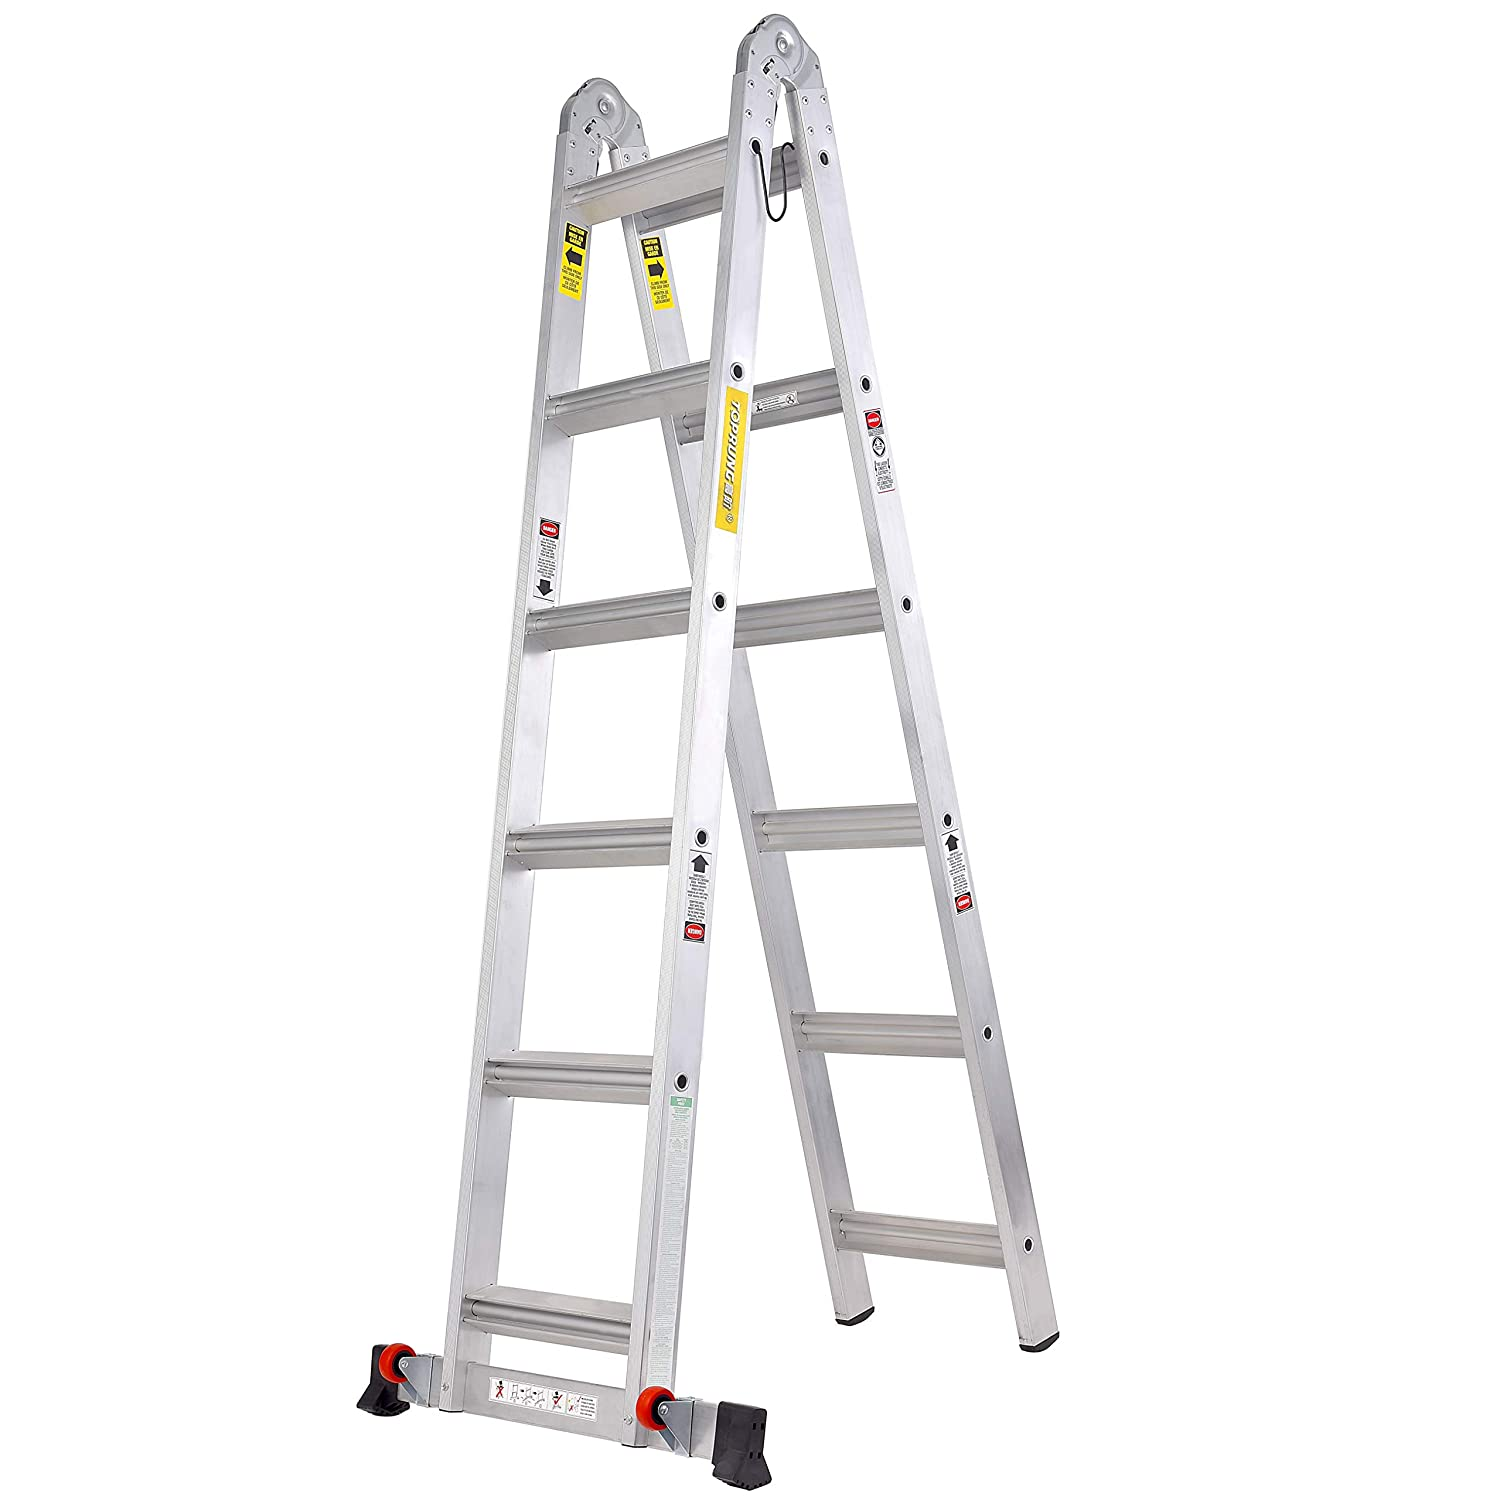 Toprung 12ft 2in1 Aluminum Extension Ladder Multi Purpose Step Ladder With Bulit In Wheels 300lbs Duty Rating Amazon In Home Improvement